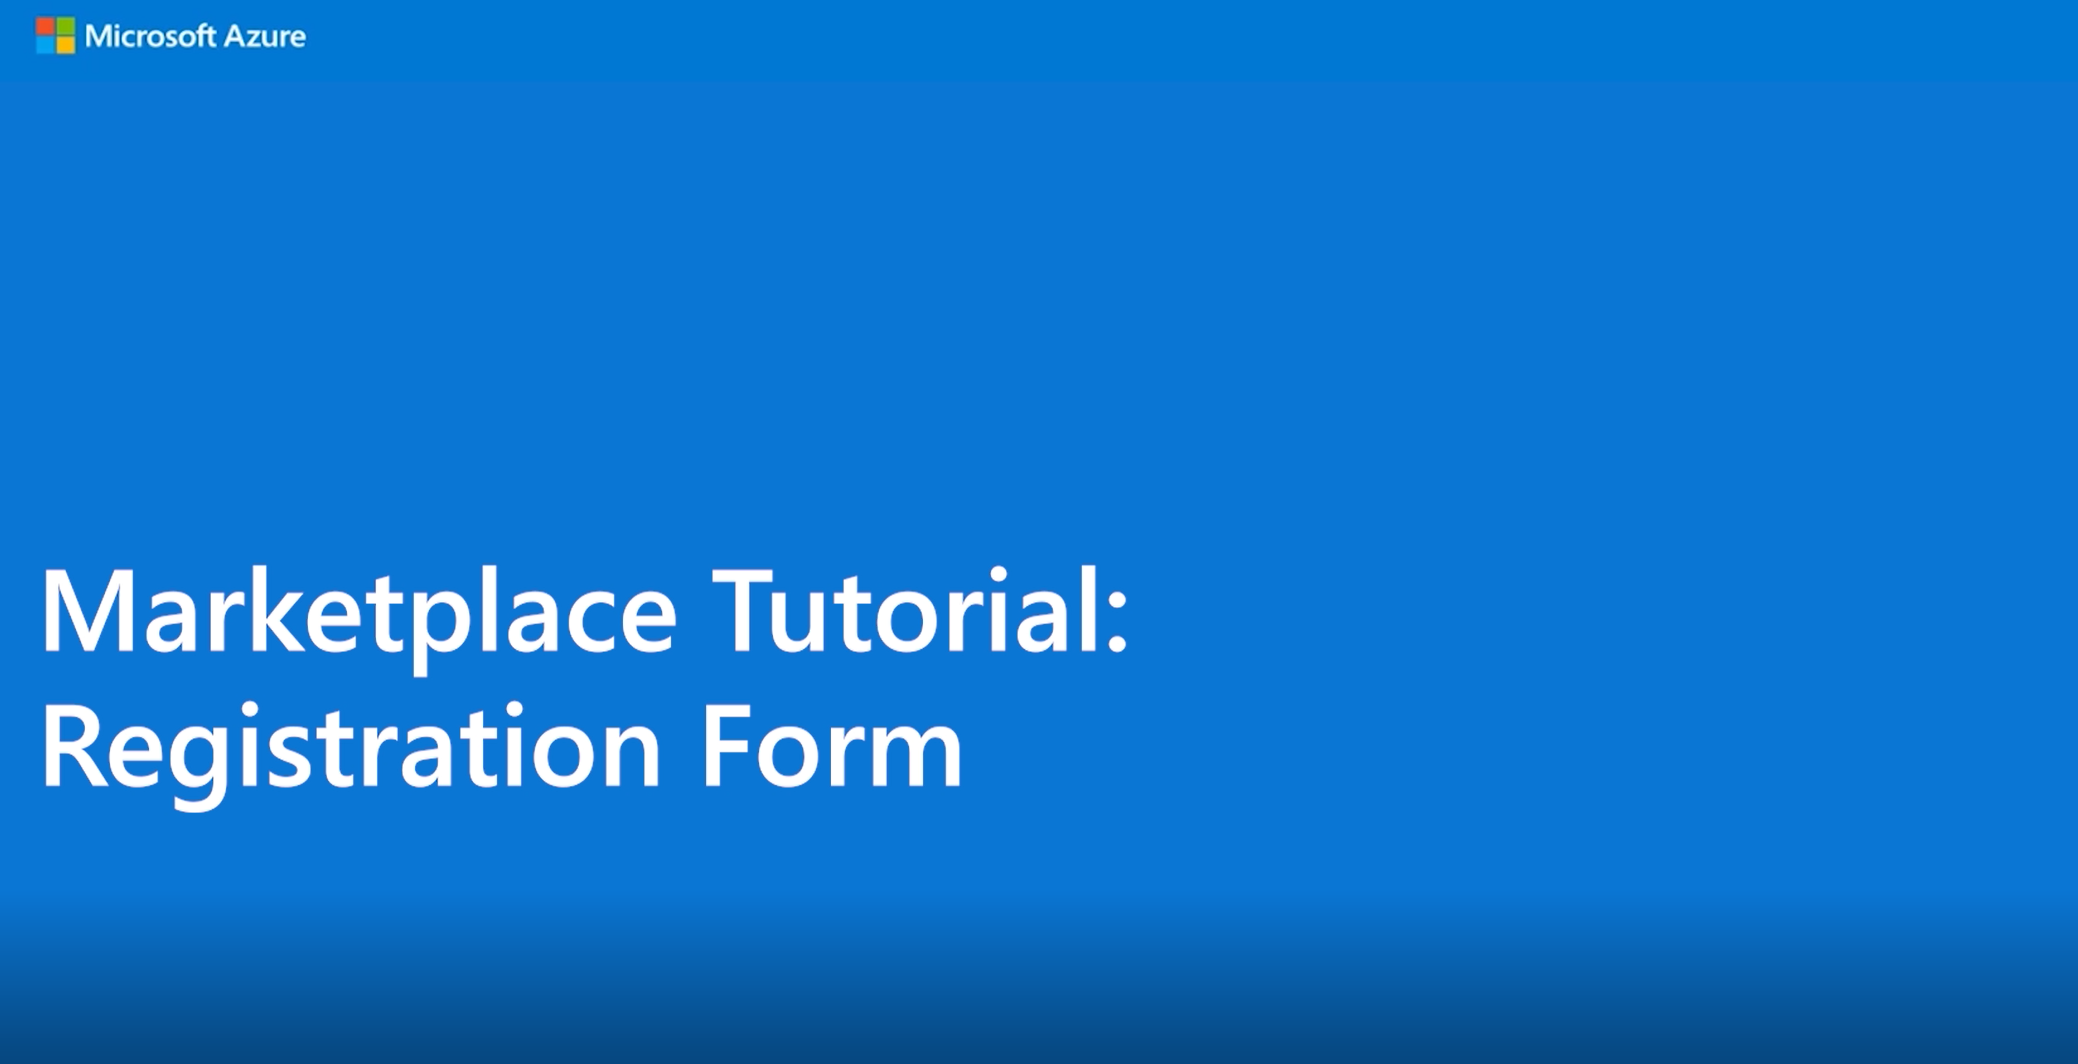 Marketplace Tutorial: Marketplace Registration Form